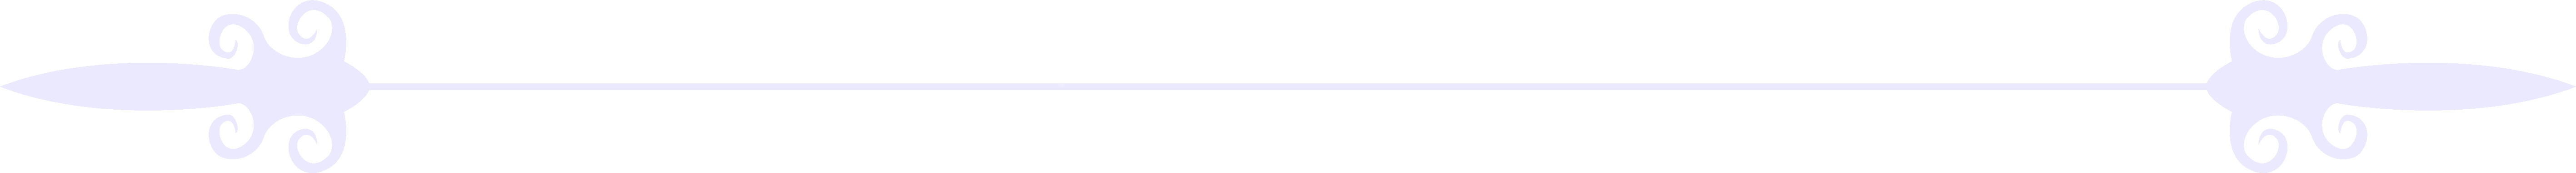 Fancy white line png. Th creations